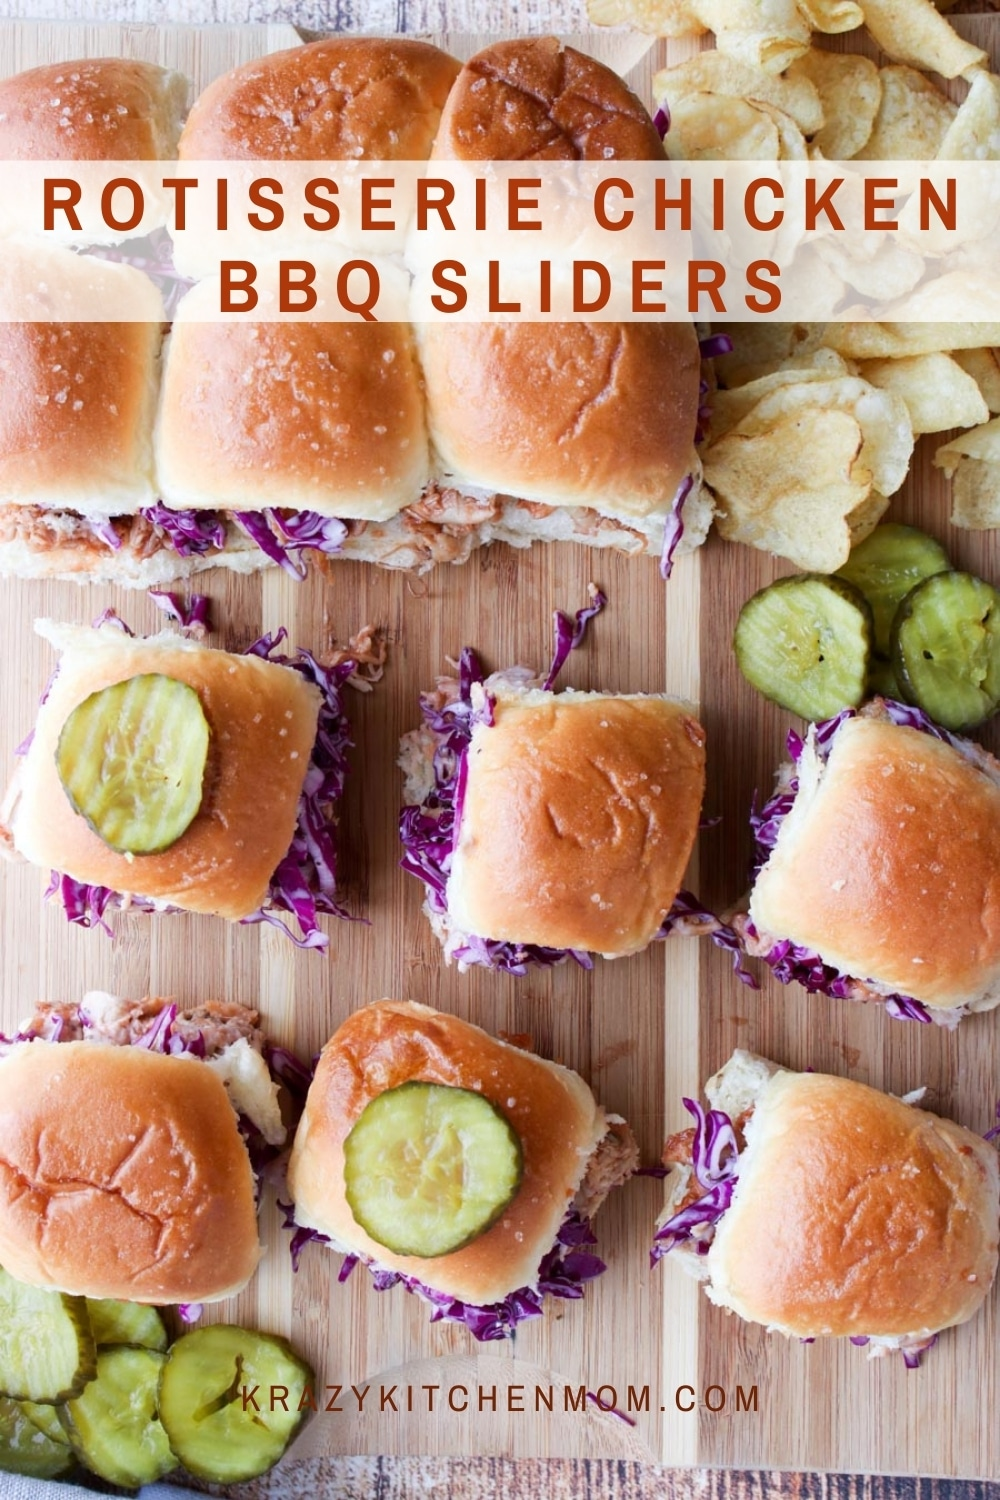 Super simple Rotisserie Chicken BBQ Sliders are made with store-bought rotisserie chicken, your favorite BBQ sauce, homemade cabbage slaw, and sweet little Hawaiian rolls. via @krazykitchenmom